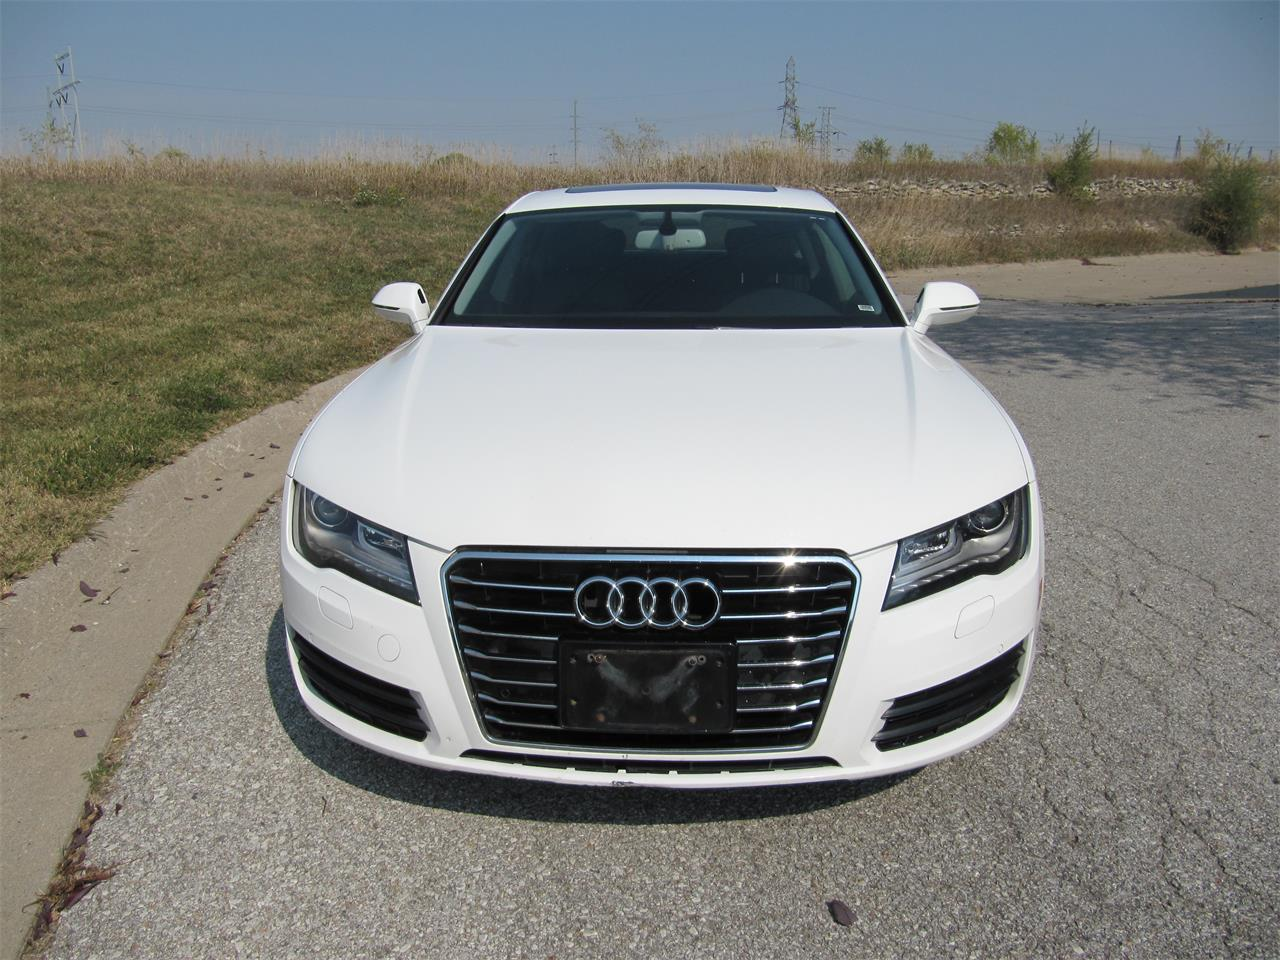 2012 Audi A6 (CC-1412658) for sale in Omaha, Nebraska